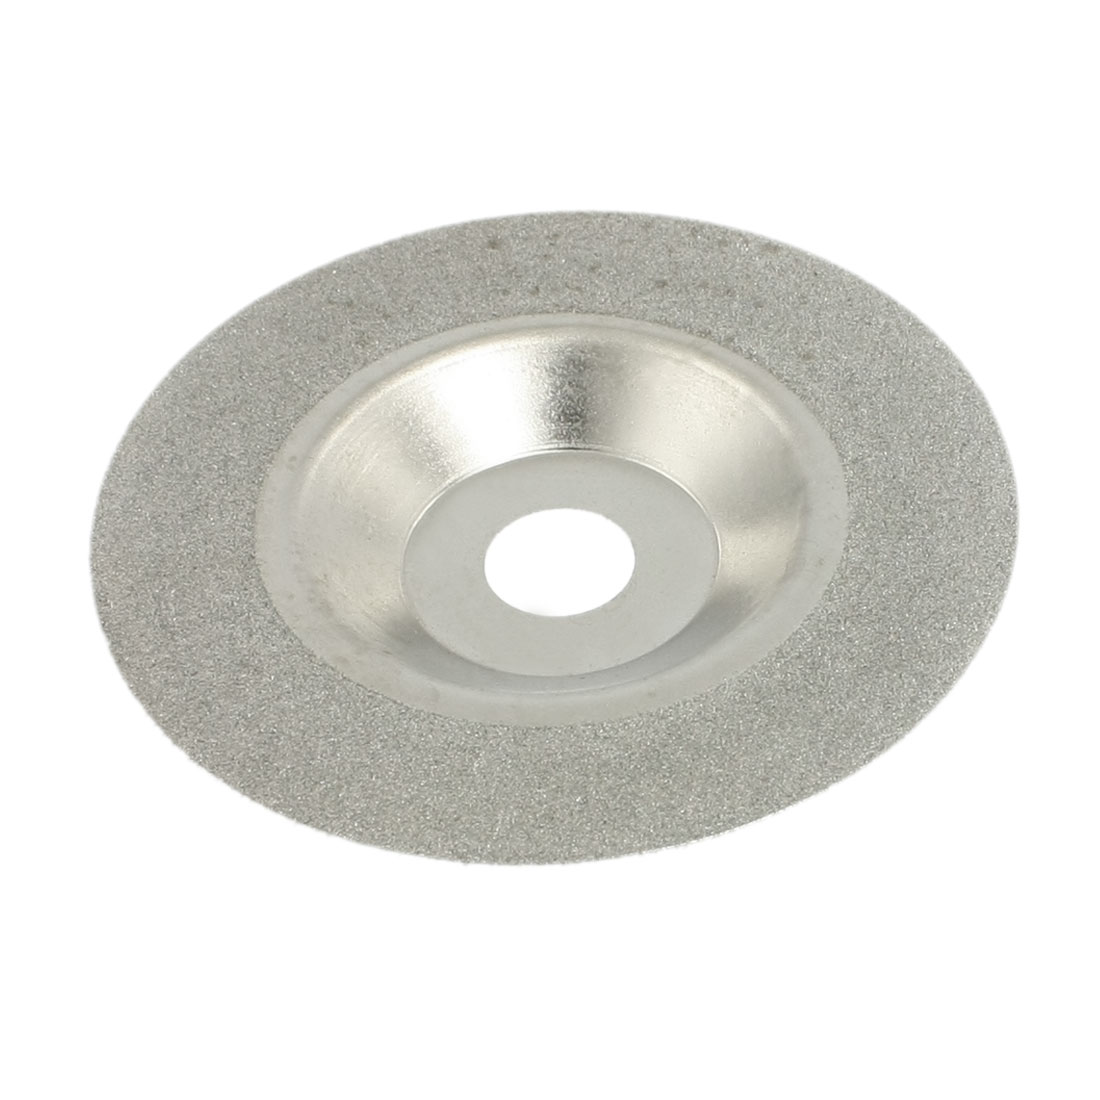 100mm x 15mm x 1.2mm Diamond Saw Cutter Cutting Wheel Disc 150 Grit